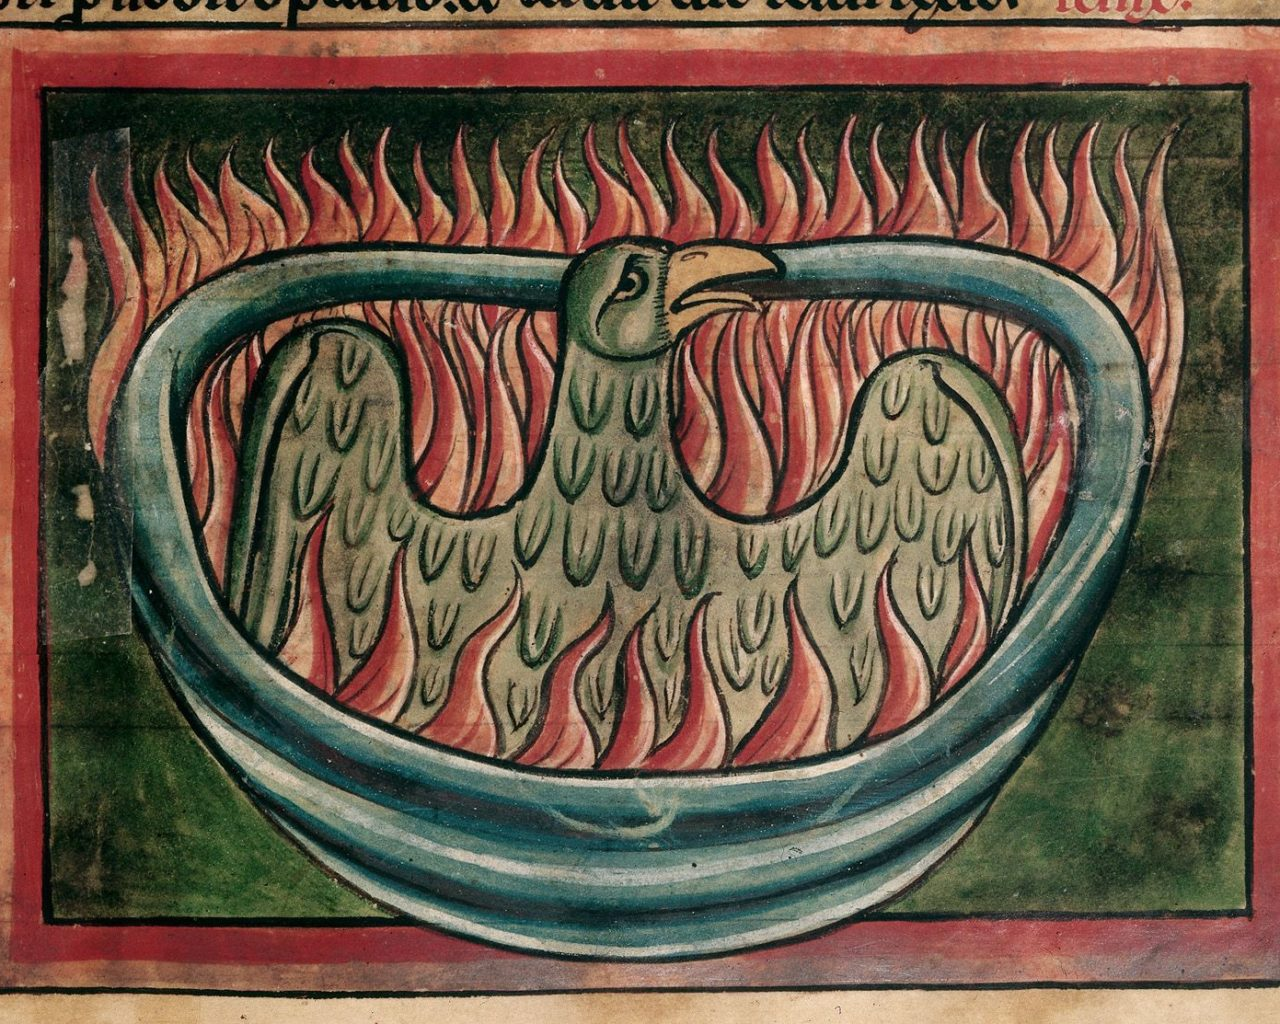 DETAIL - A phoenix rising from the ashes in a 13th-century bestiary (c) British Library